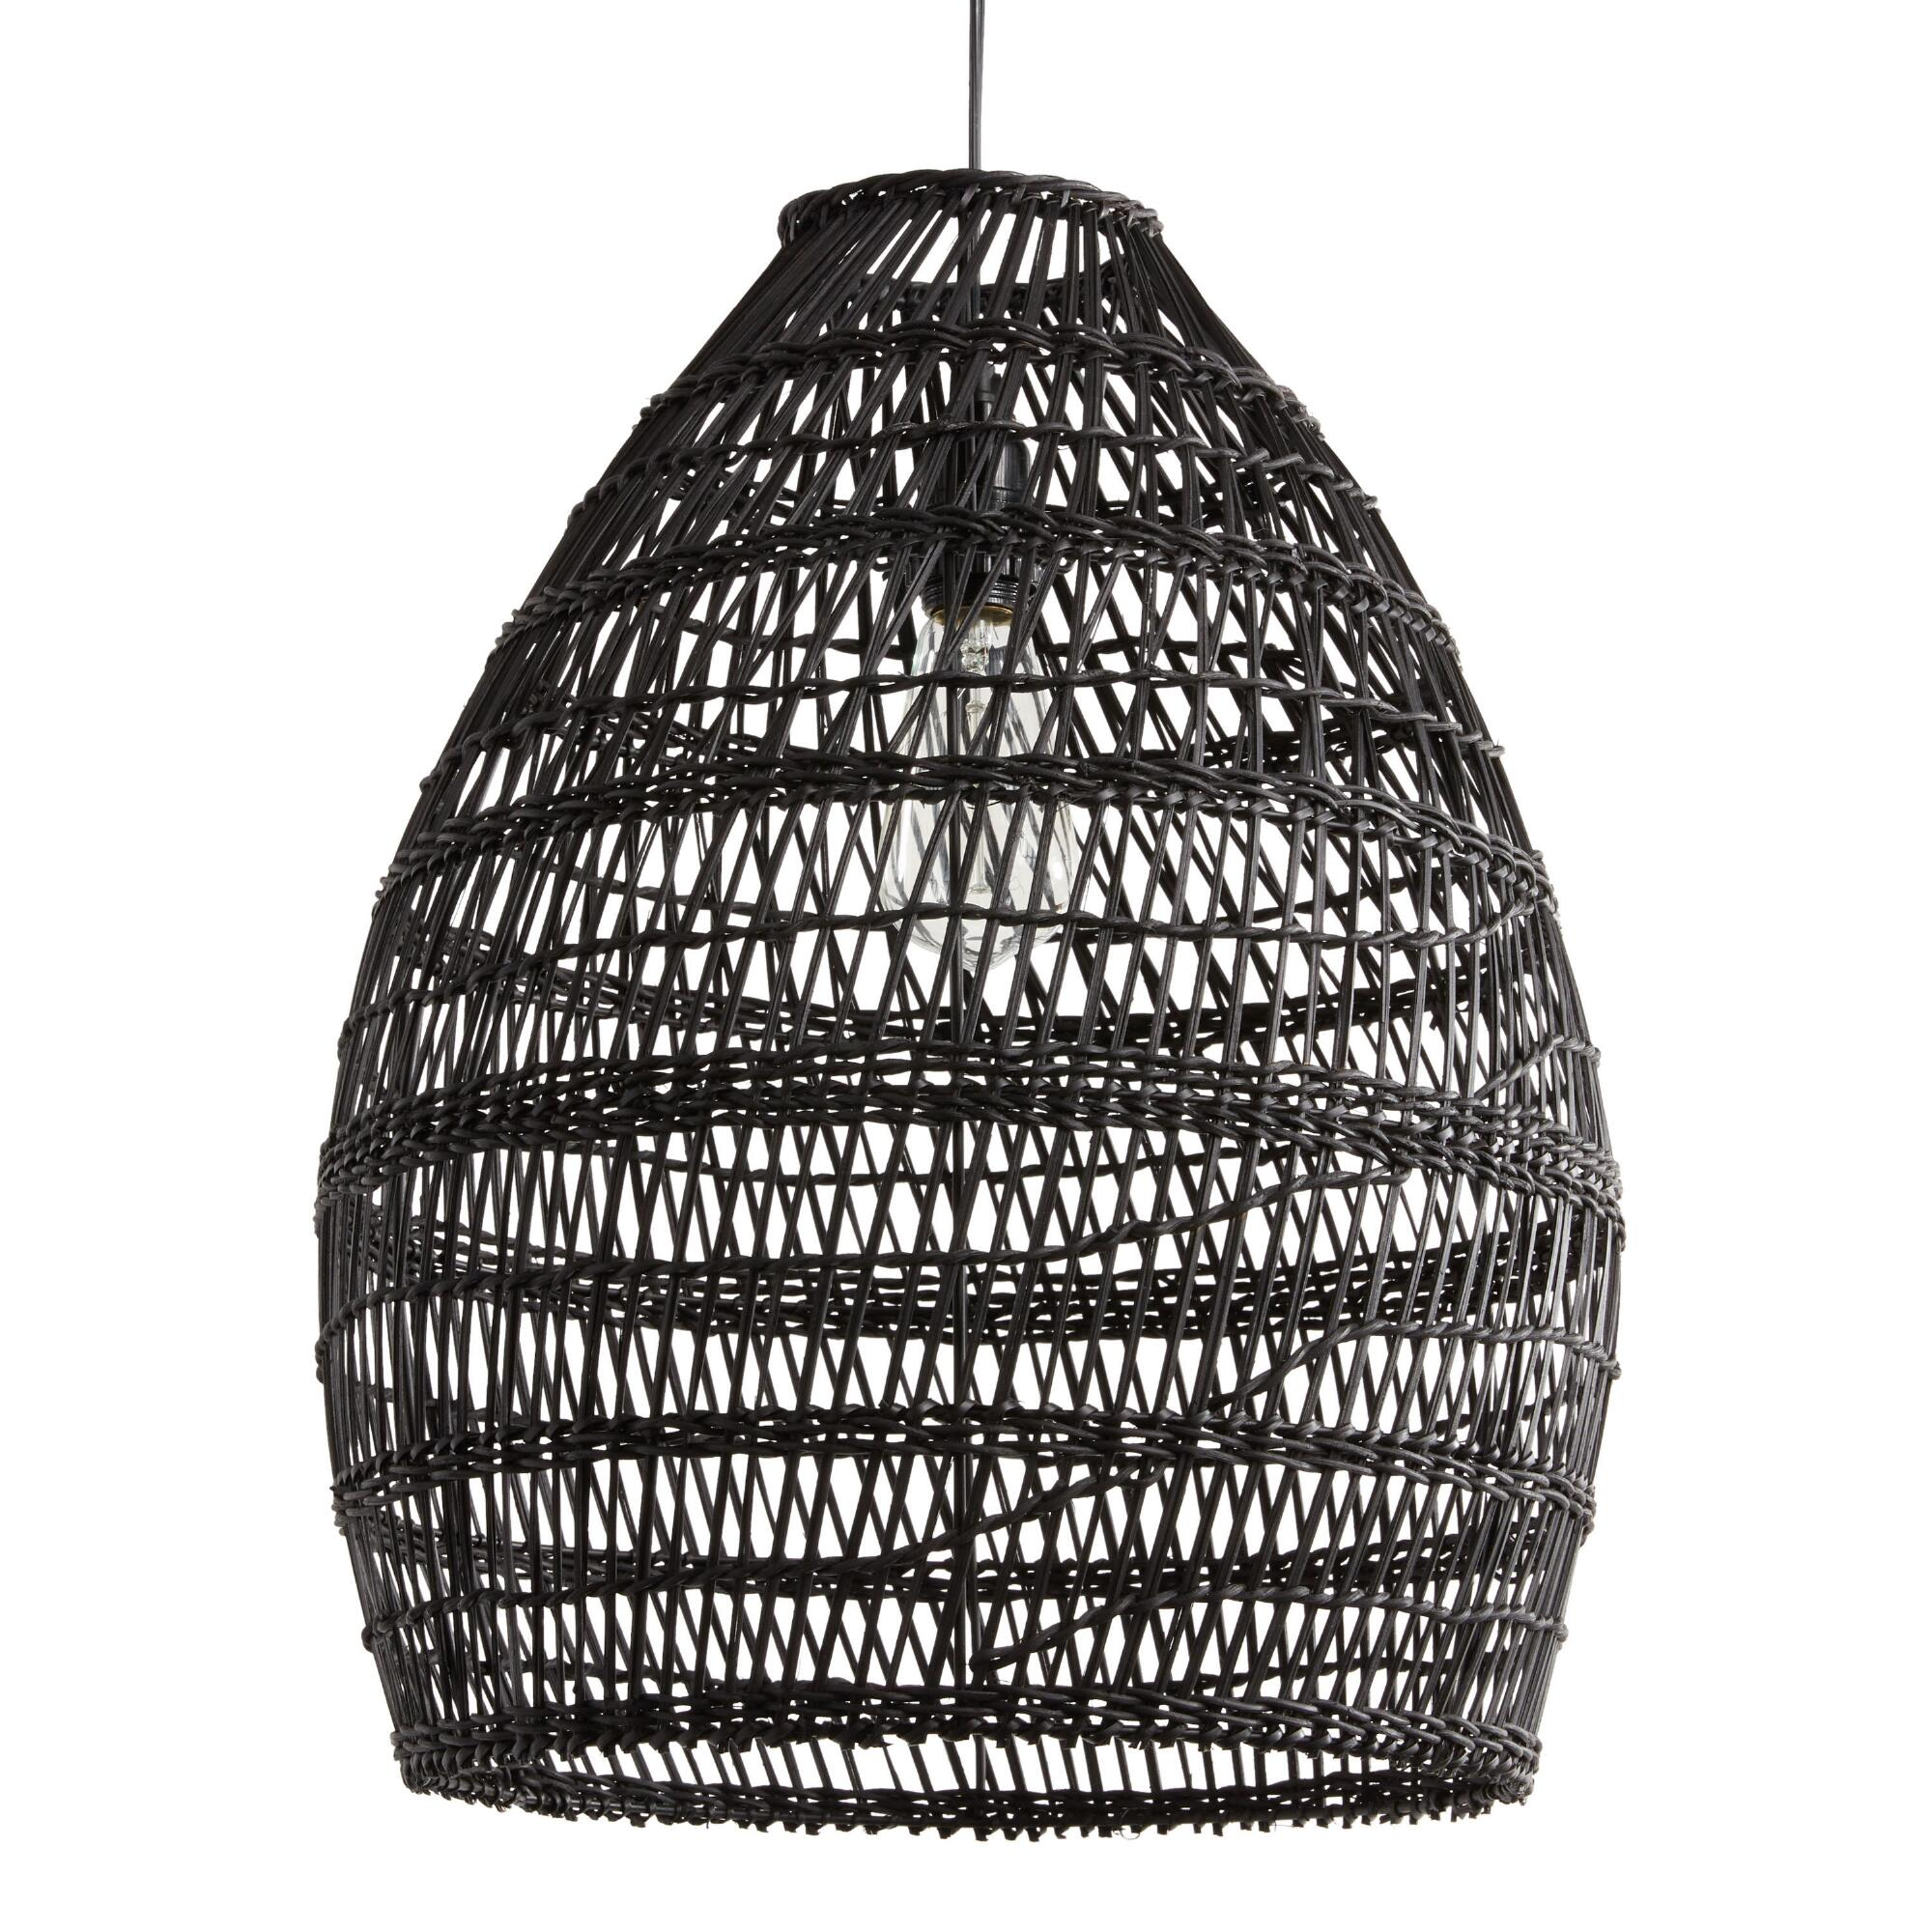 Wicker Outdoor Hanging Lights: Black Woven Bamboo Pendant Shade